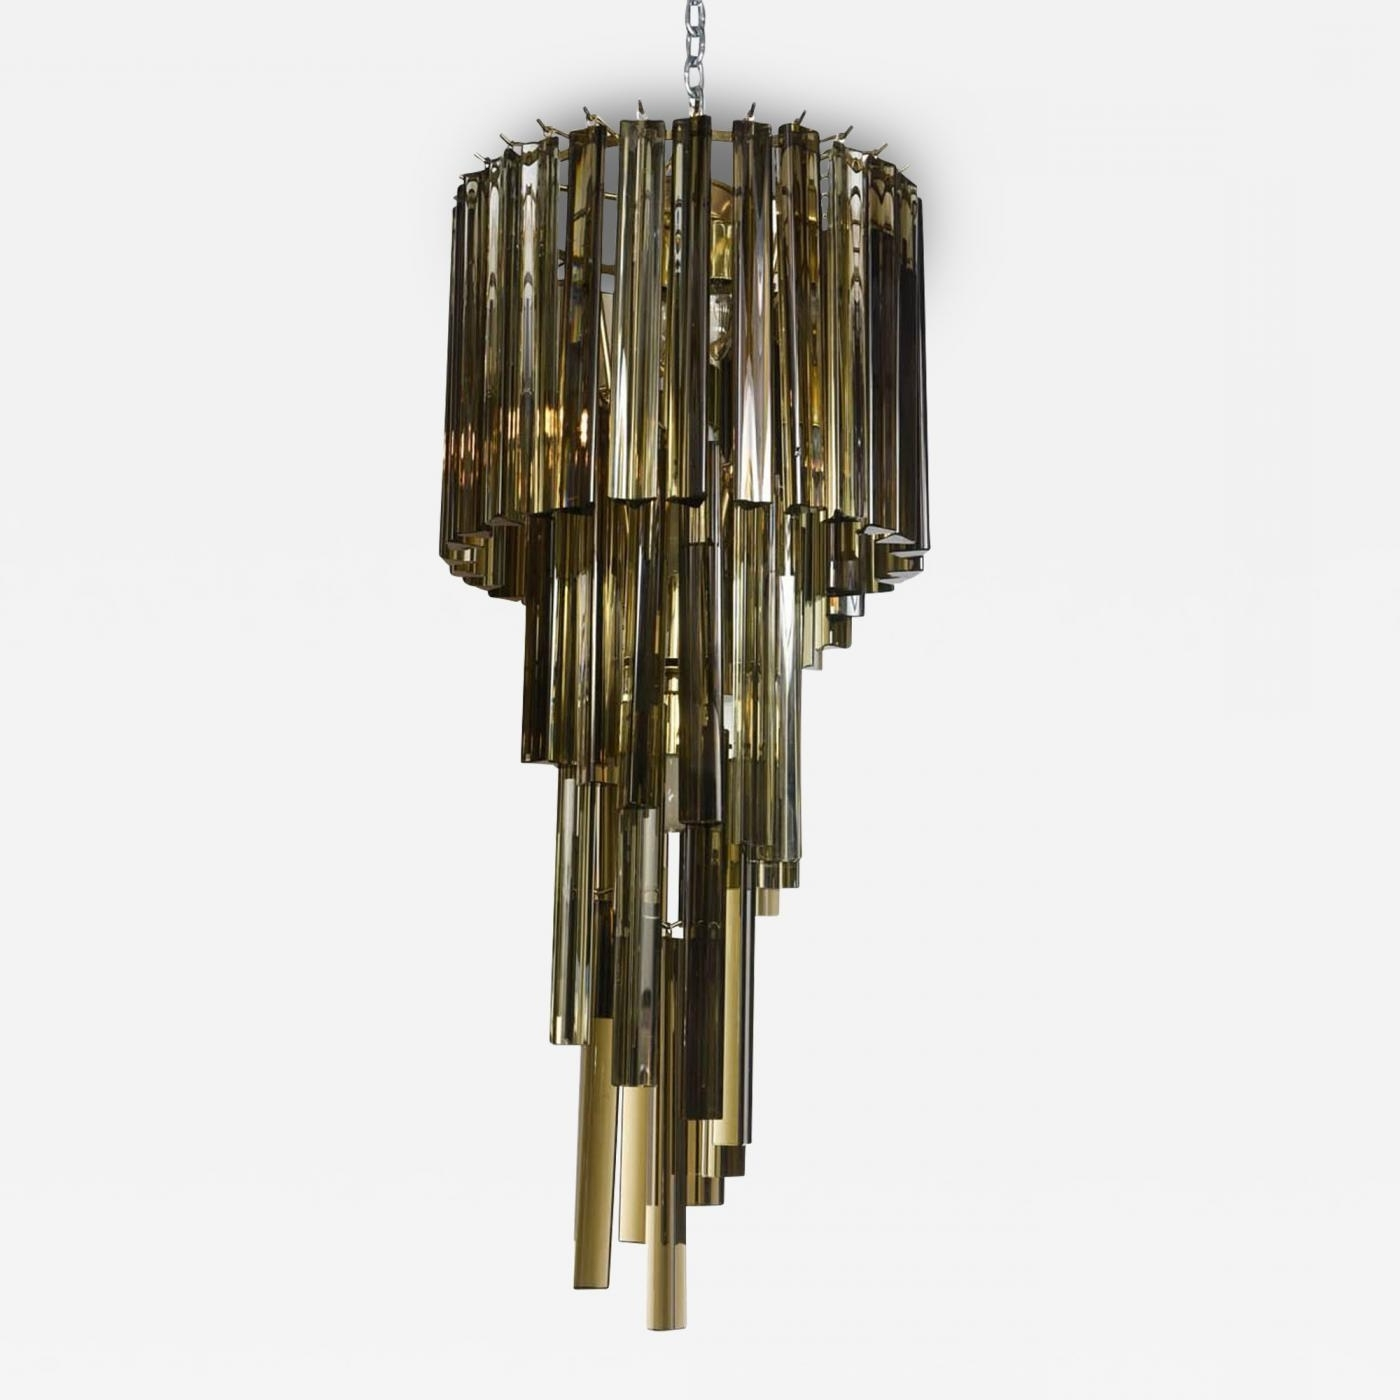 Smoked Glass Chandelier Throughout Latest Camer Glass – Rare Vintage Smoked Triedri Crystal Spiral Chandelier (View 16 of 20)